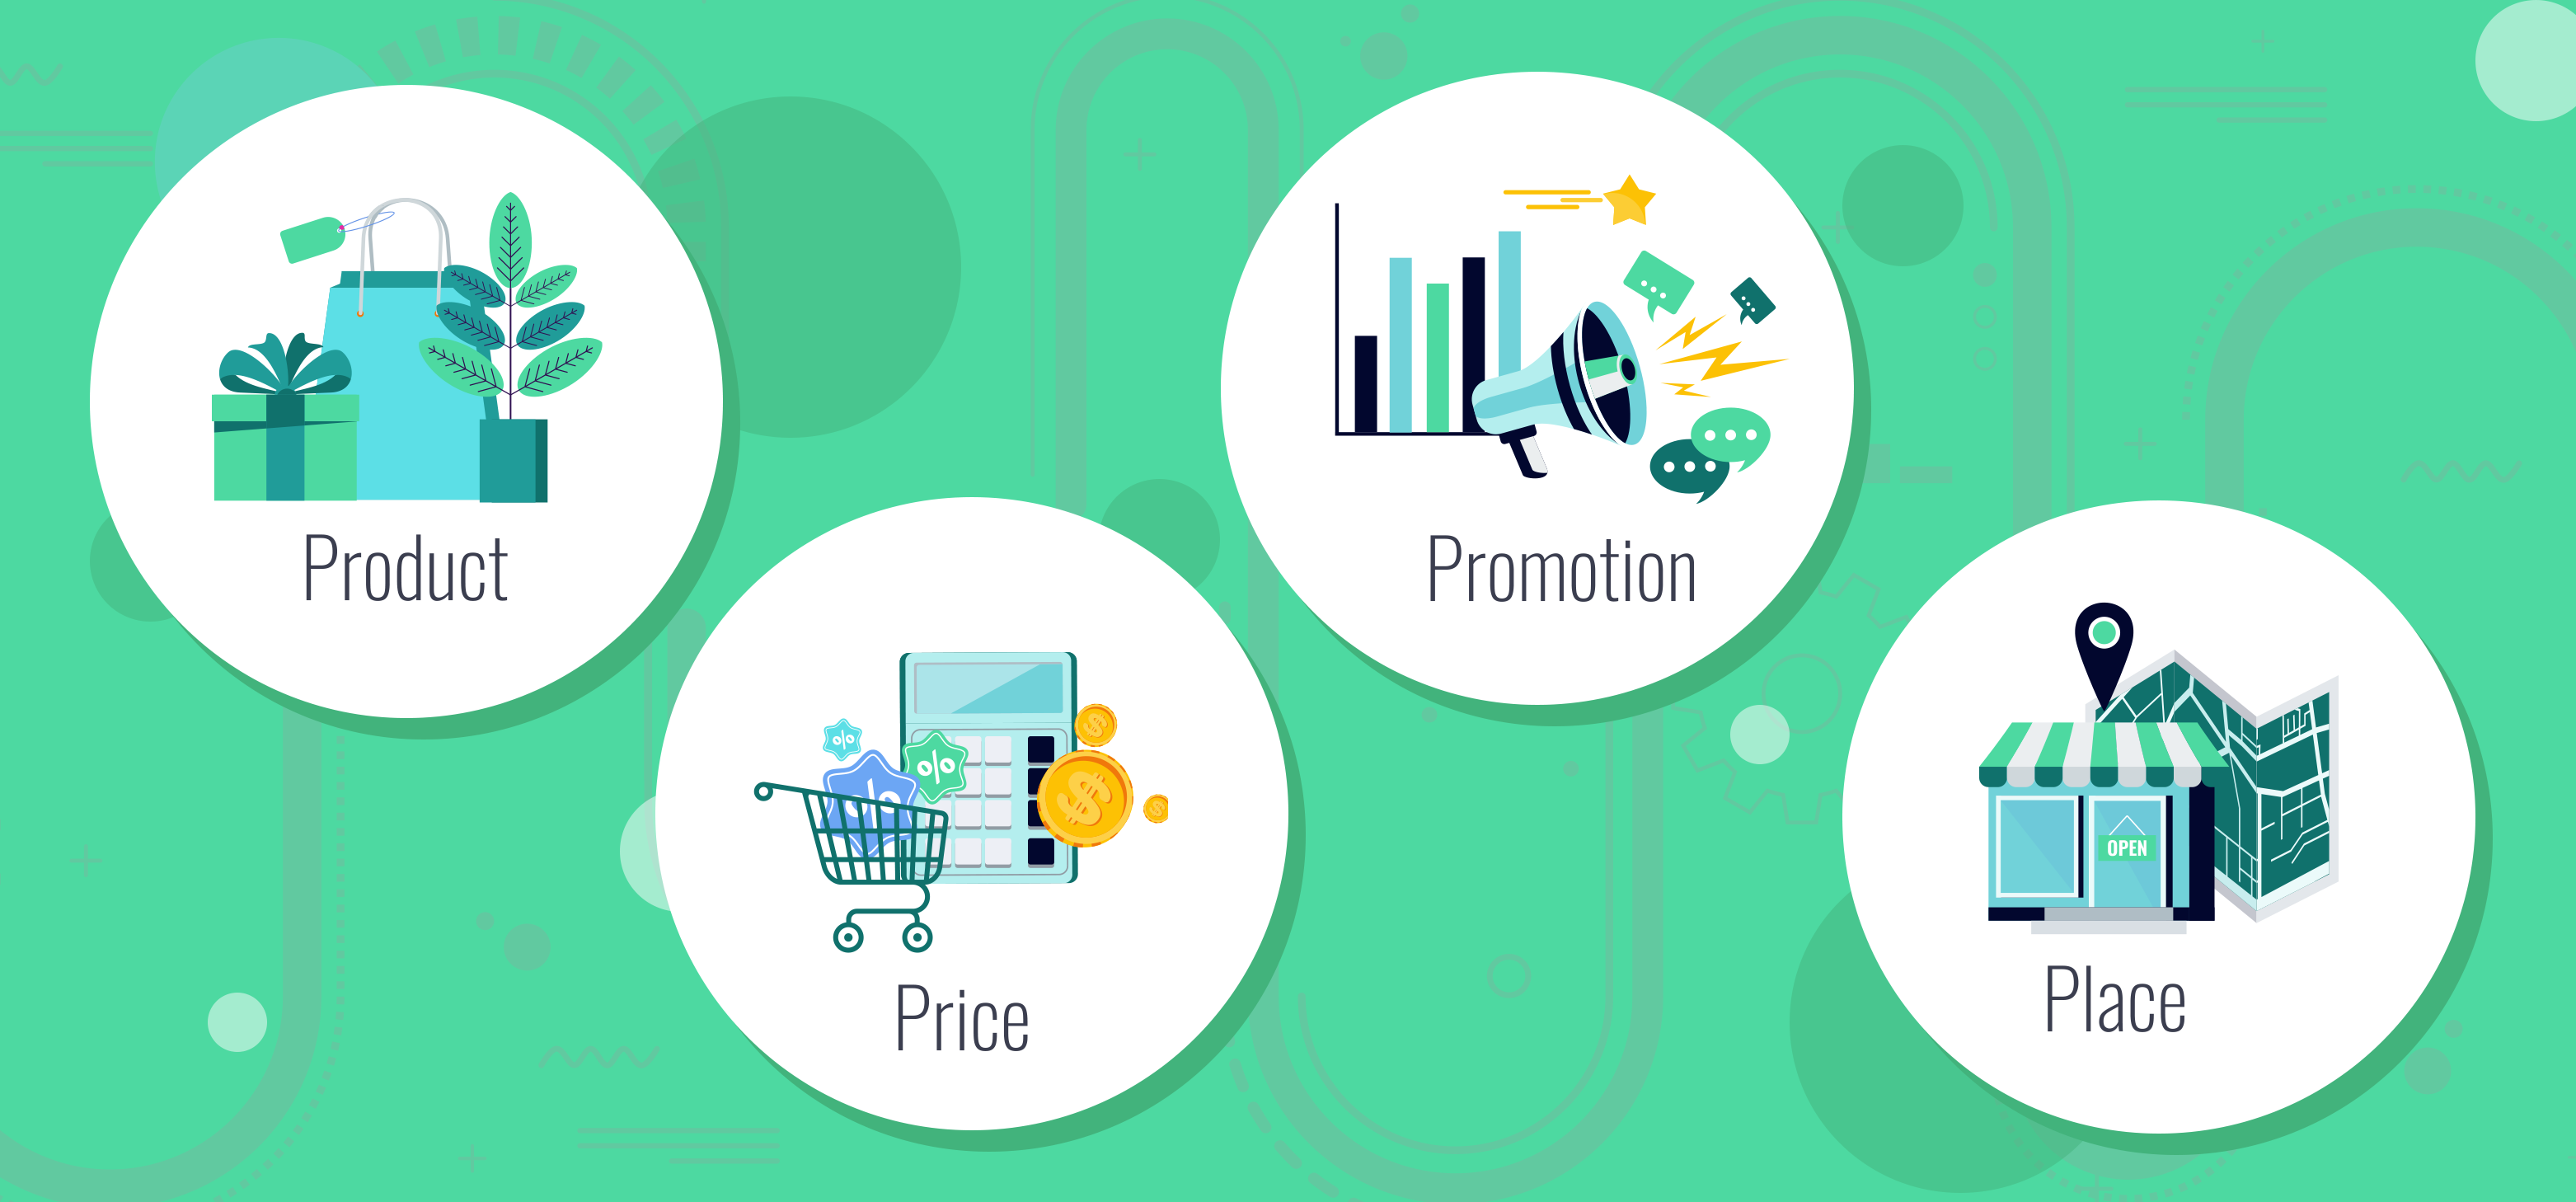 Four Ps of Marketing featured